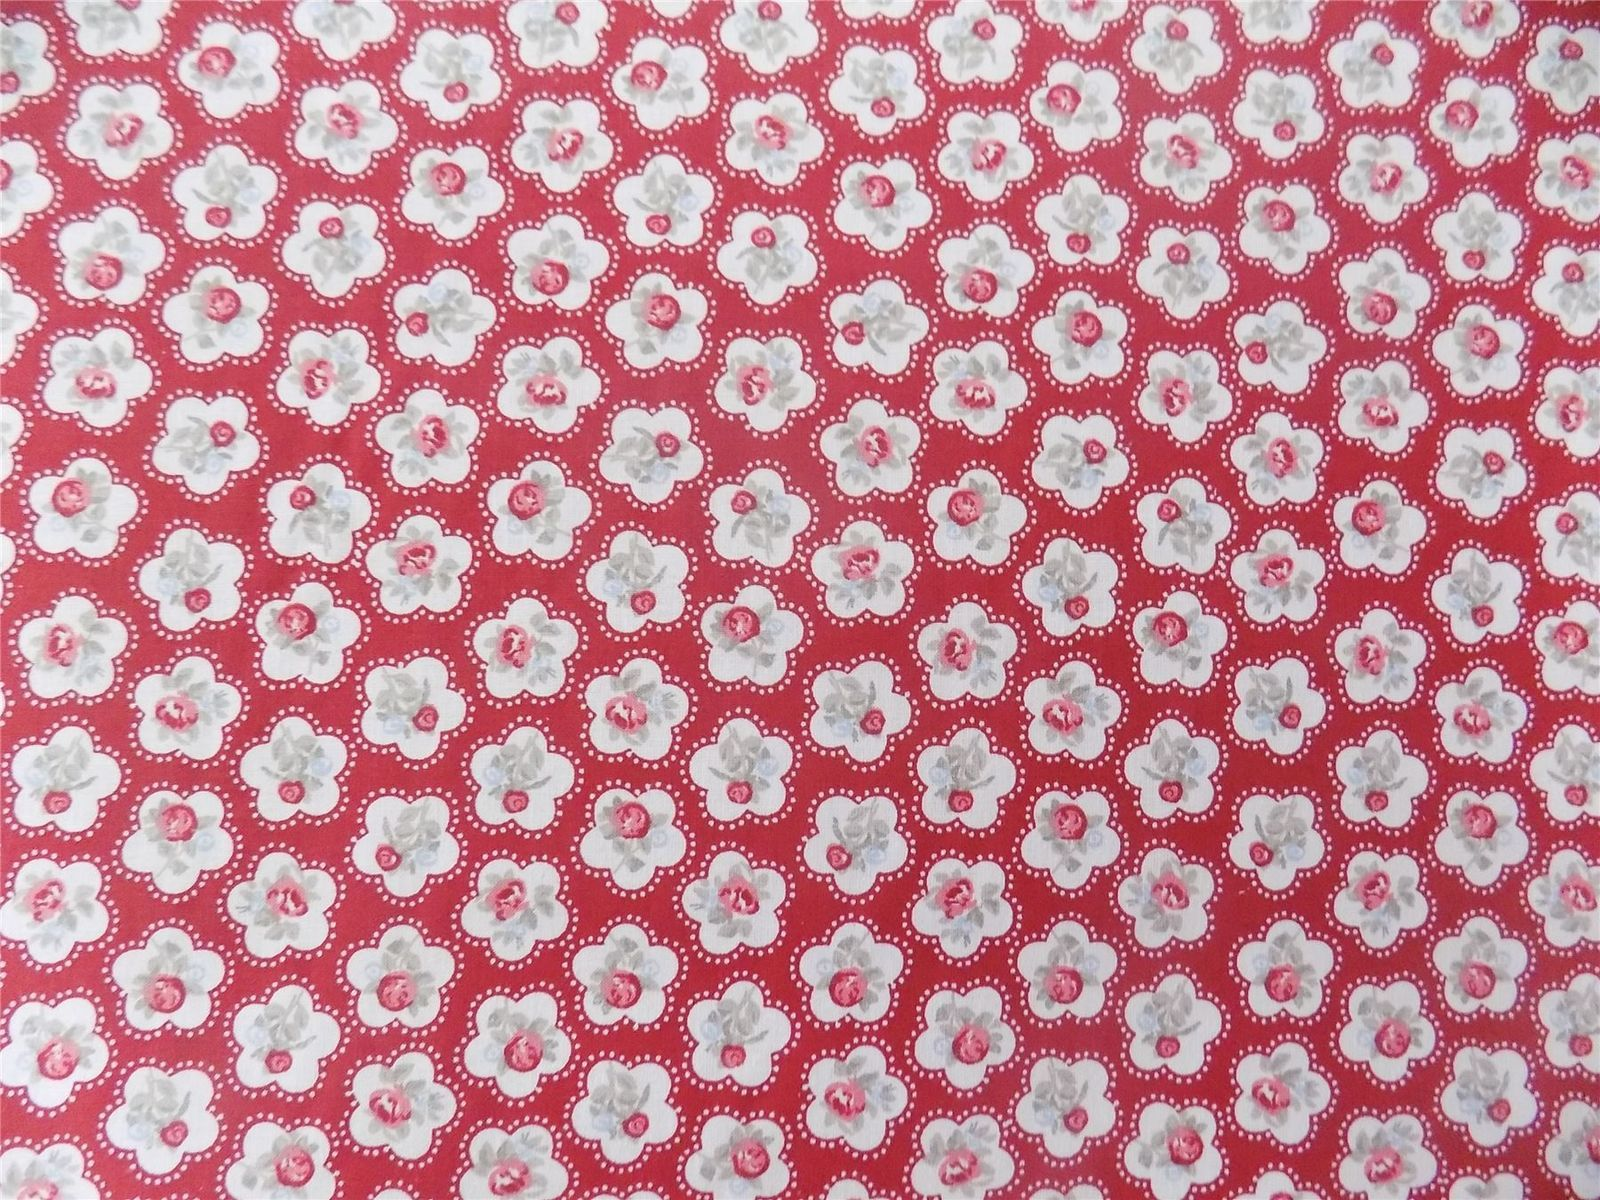 Floral Red White Rose Flowers 100% Cotton High Quality Fabric Material *3 Sizes*